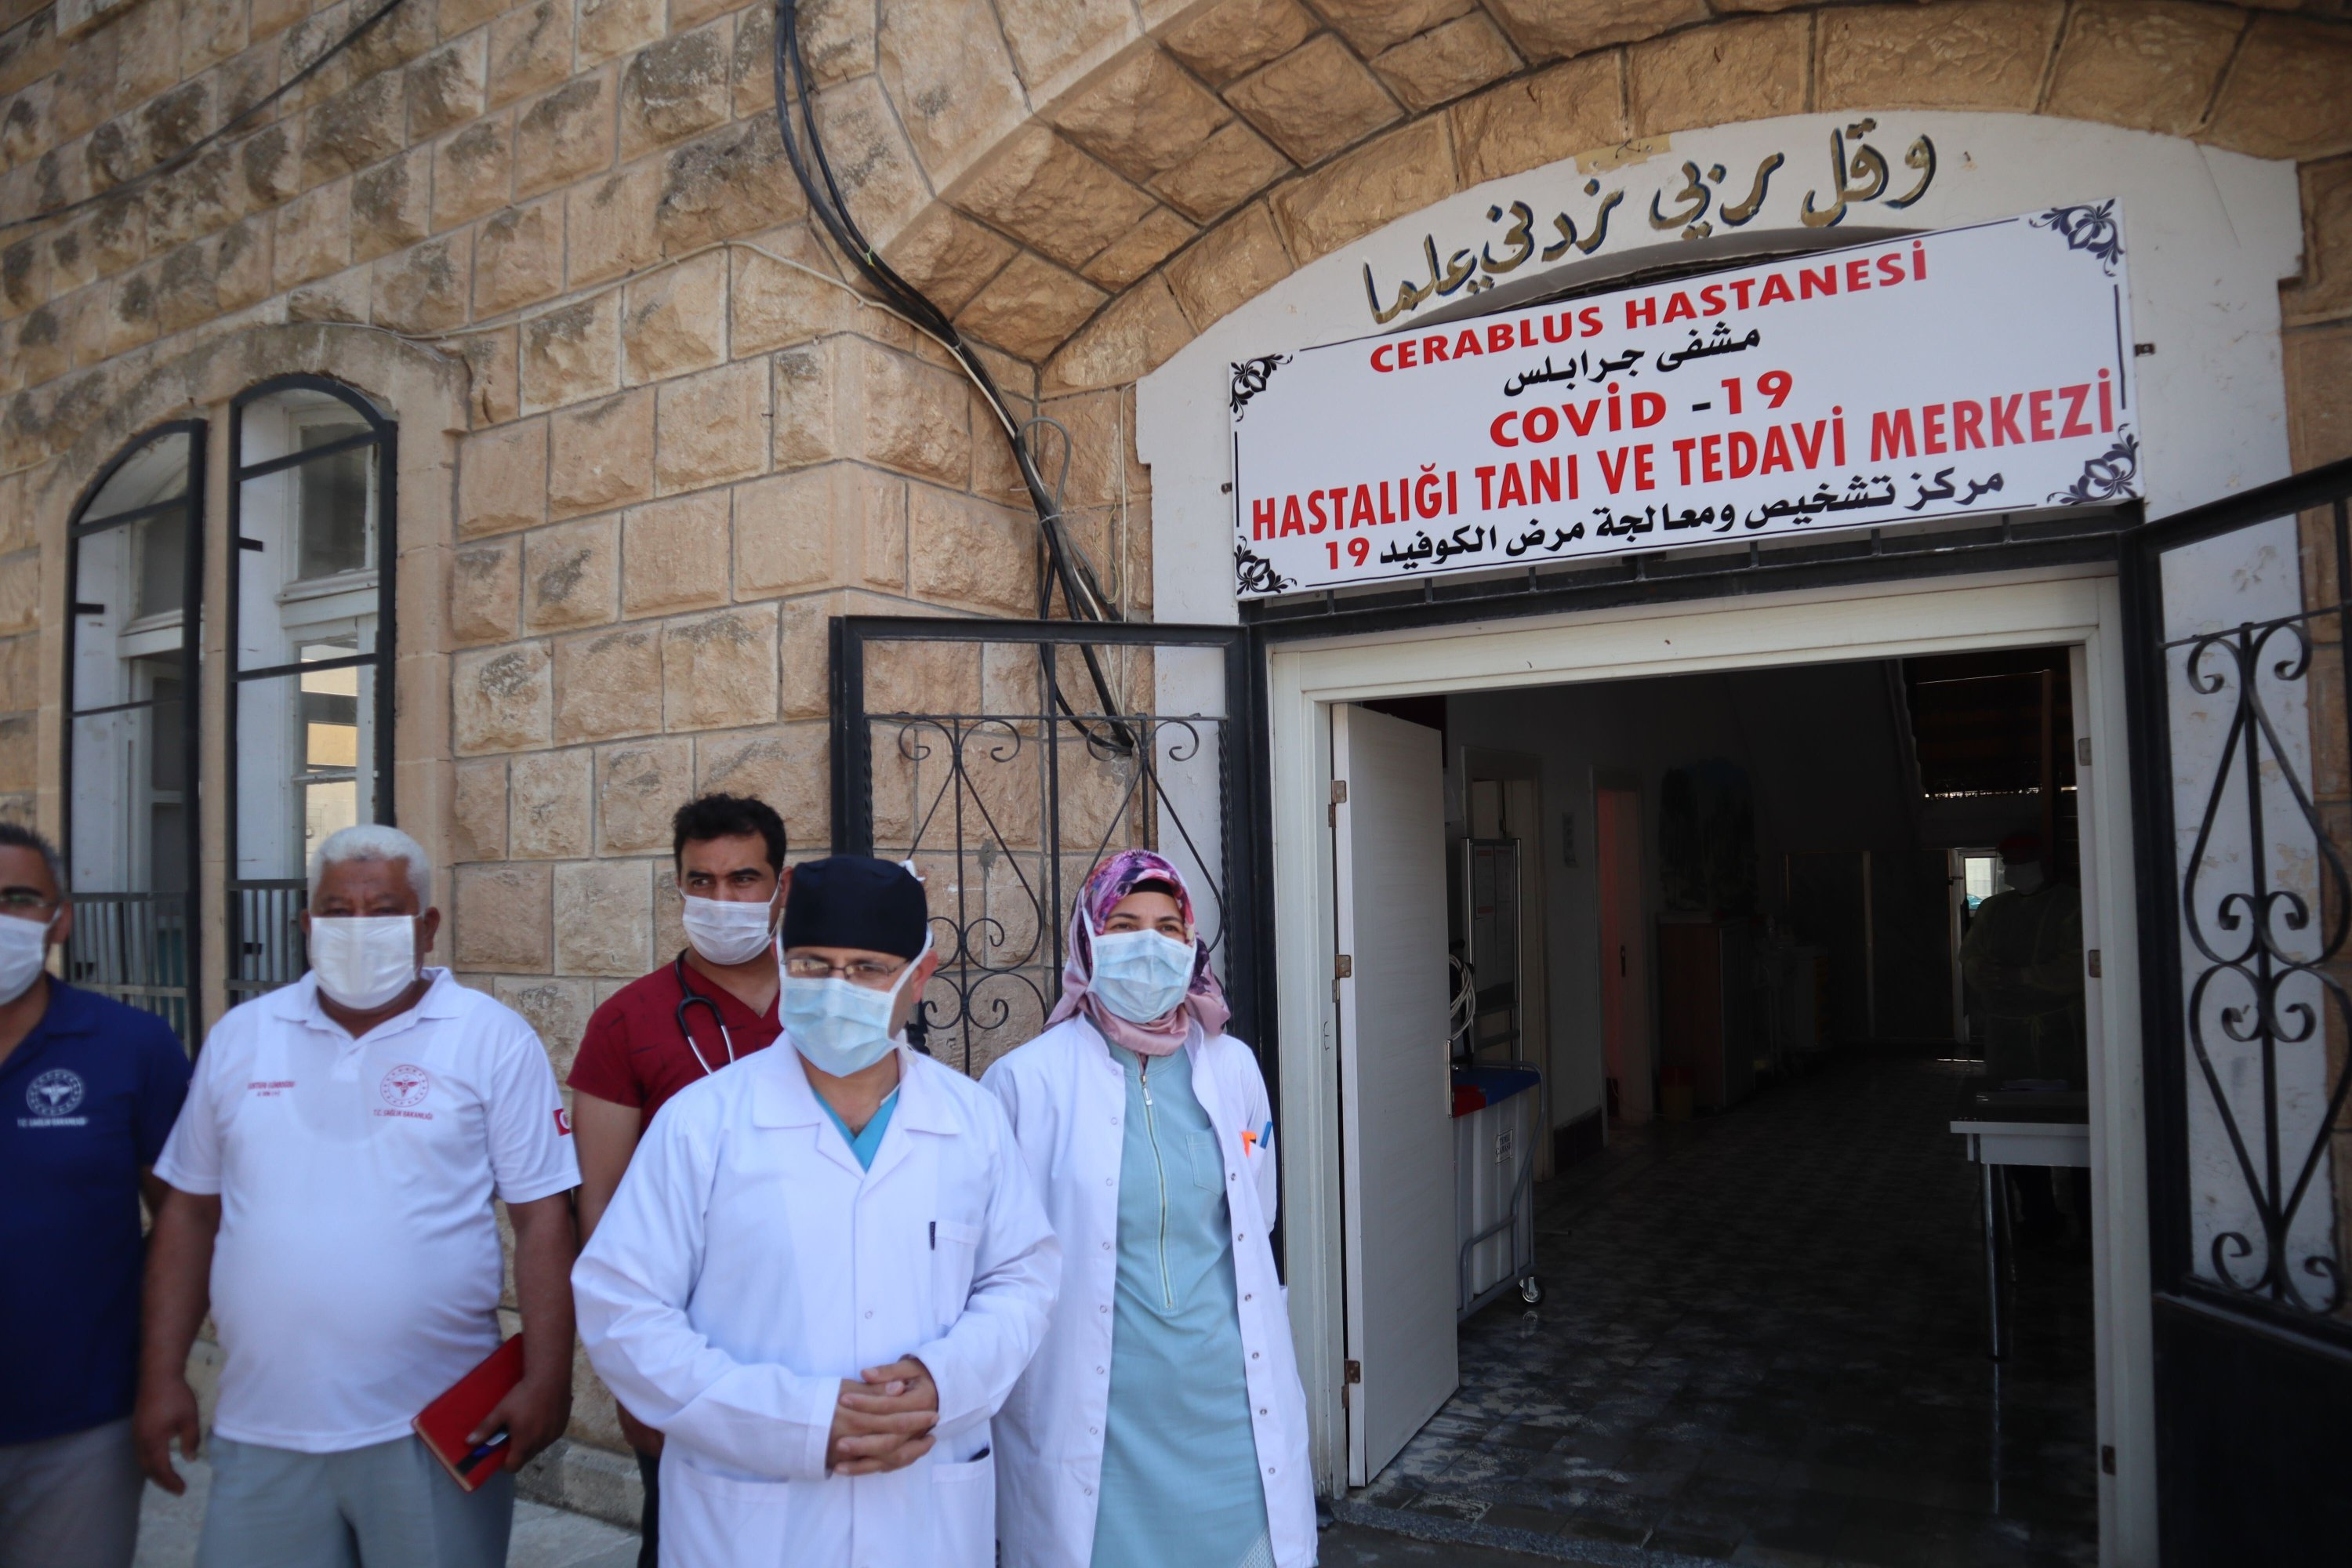 Chief physician Yasin Şahin stands in front of health staff at the COVID-19 hospital in Jarablus, Syria, Aug. 27, 2020 (Dilara Aslan)